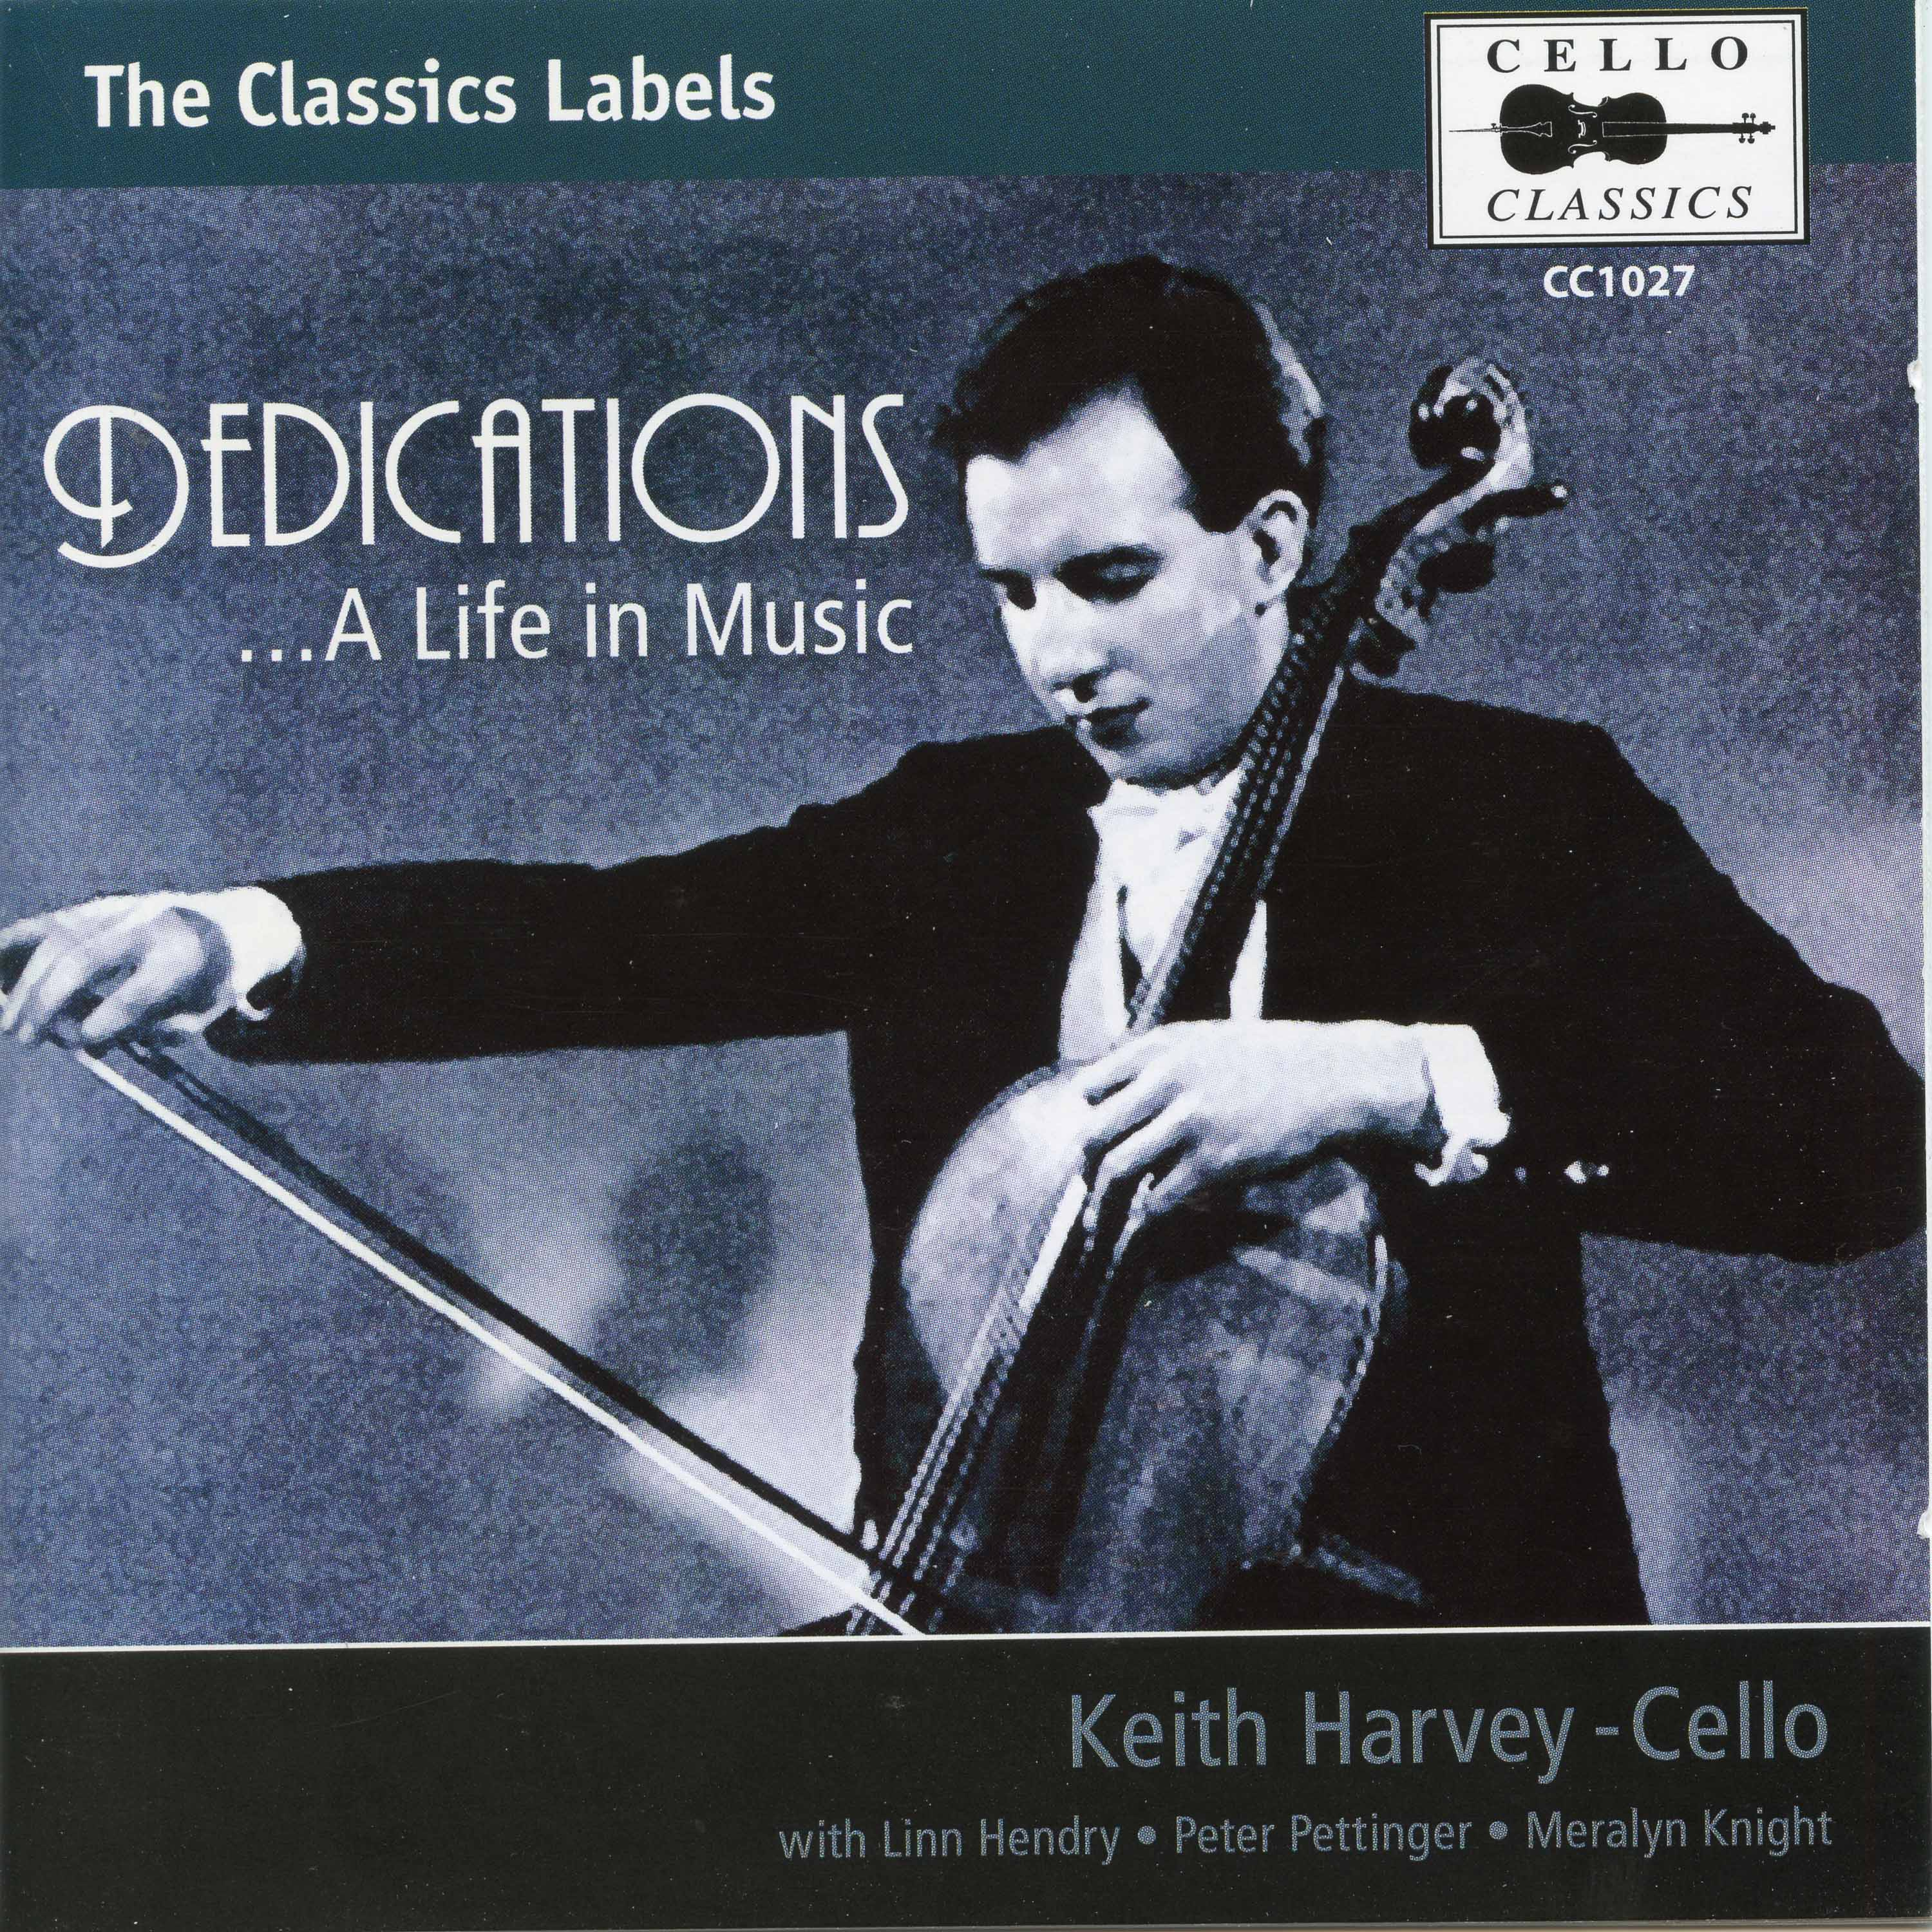 Dedications... A Life in Music